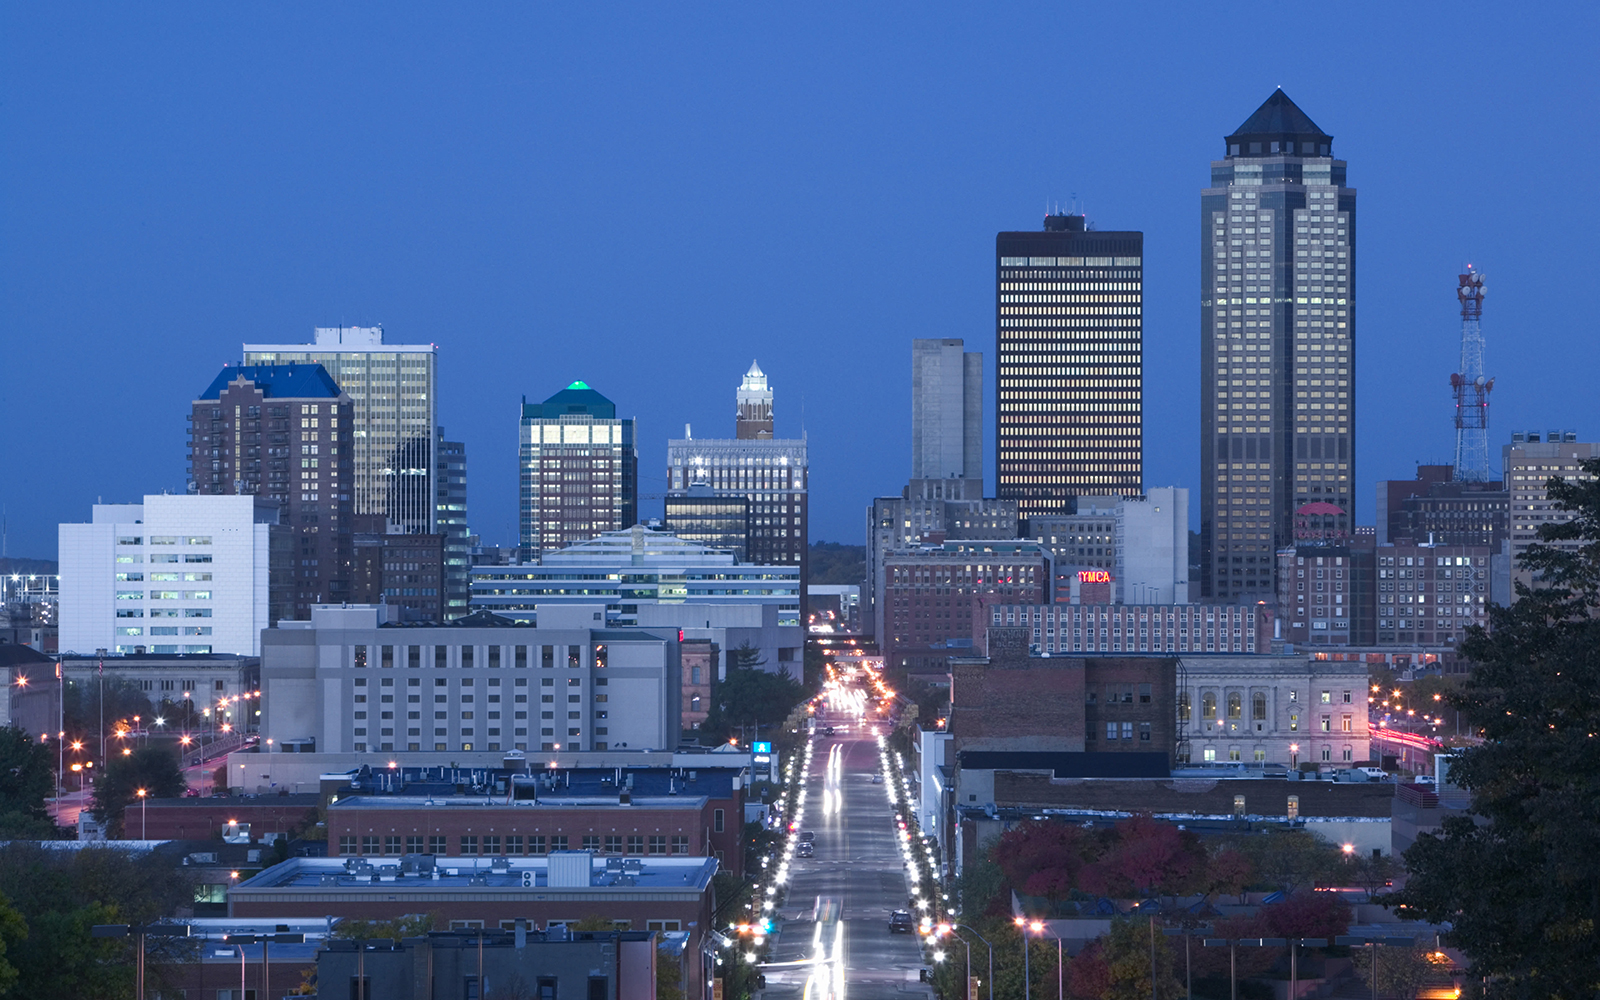 Skyline of Des Moines, Iowa, USA